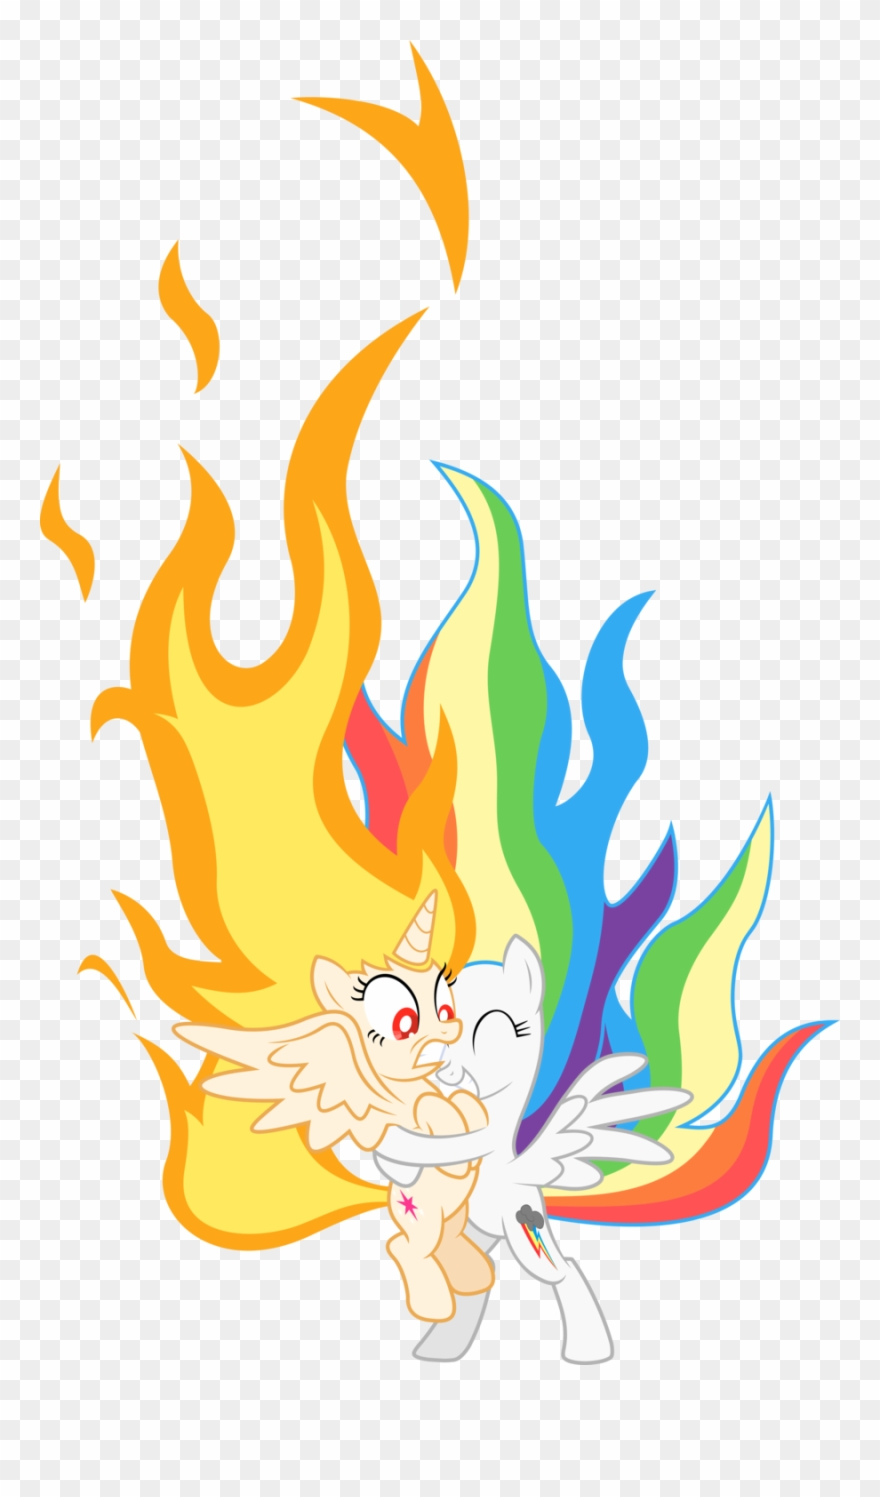 192-1923455_mlp-fire-vector-best-rainbow